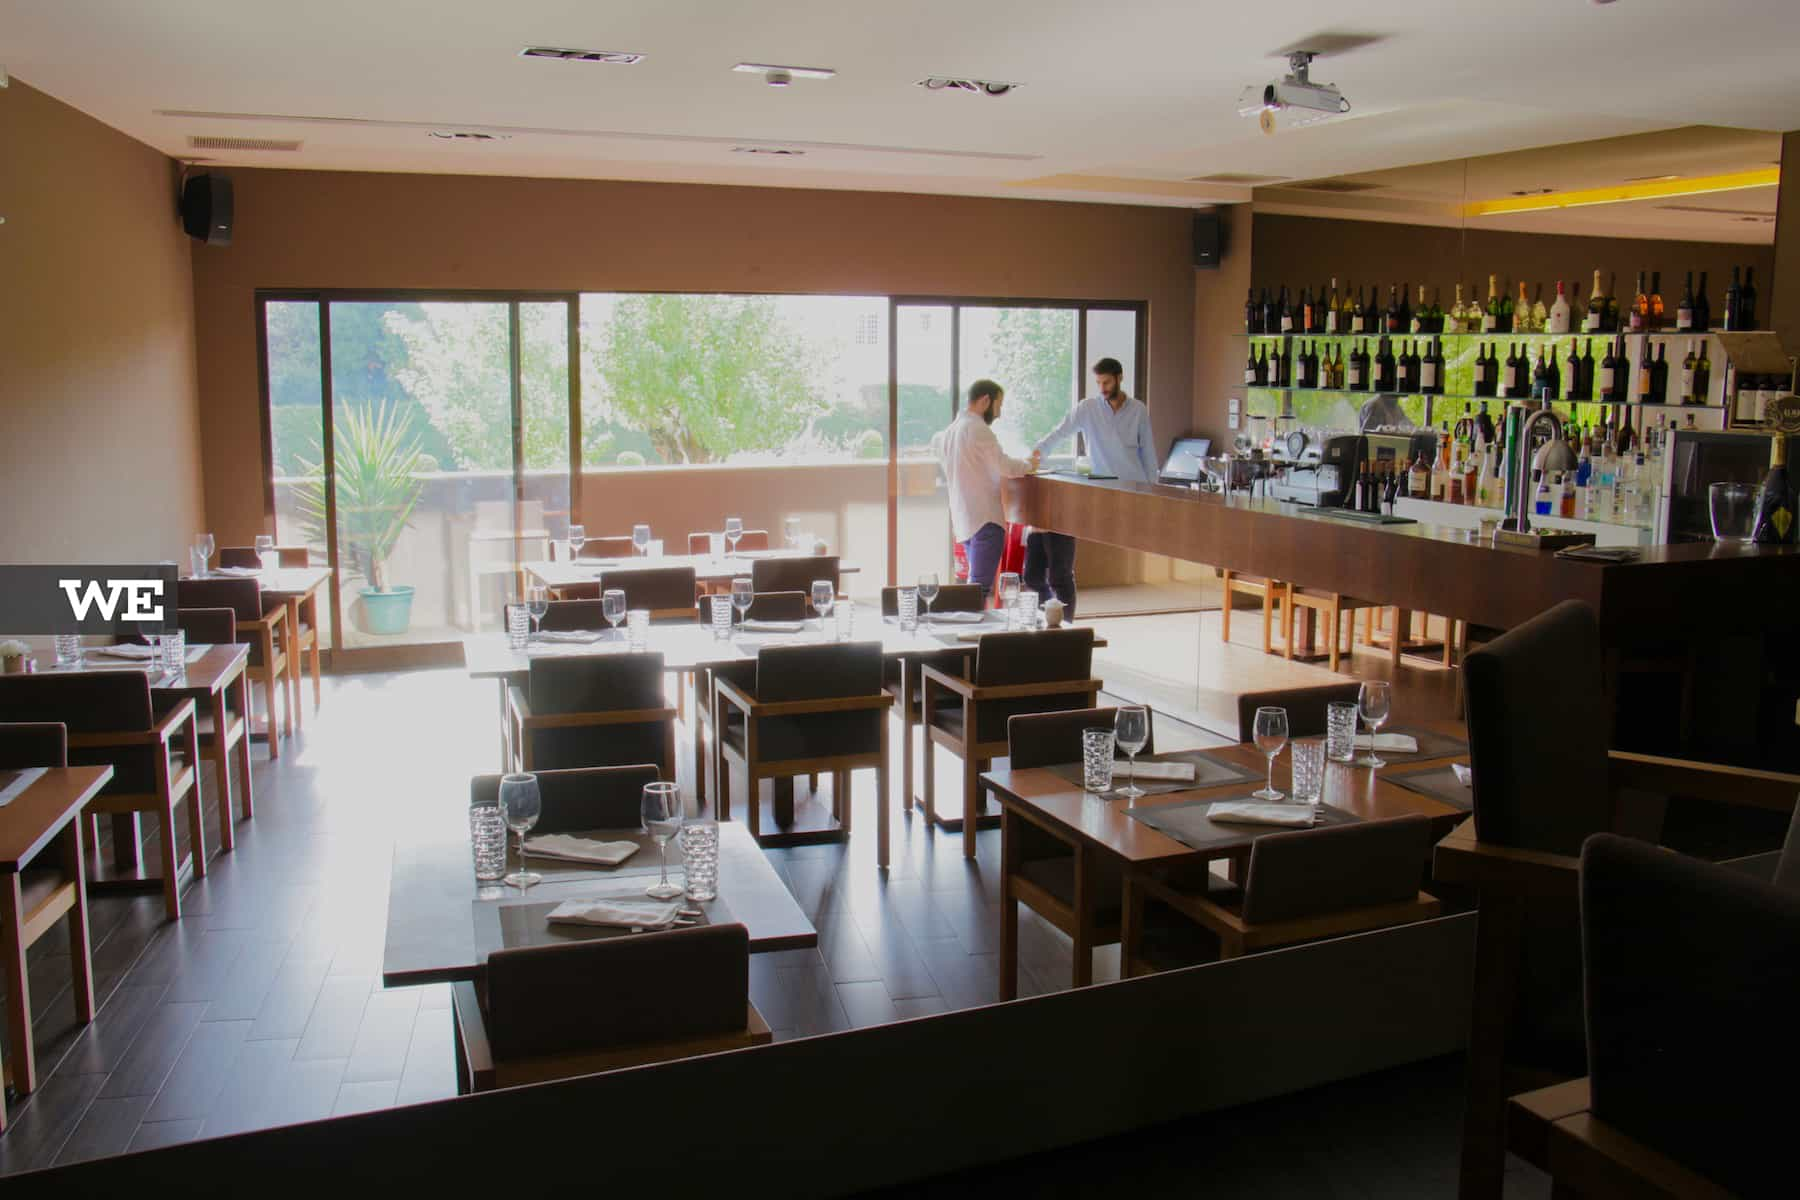 we-braga-restaurante-sushi-alma-dec%cc%a7a-46